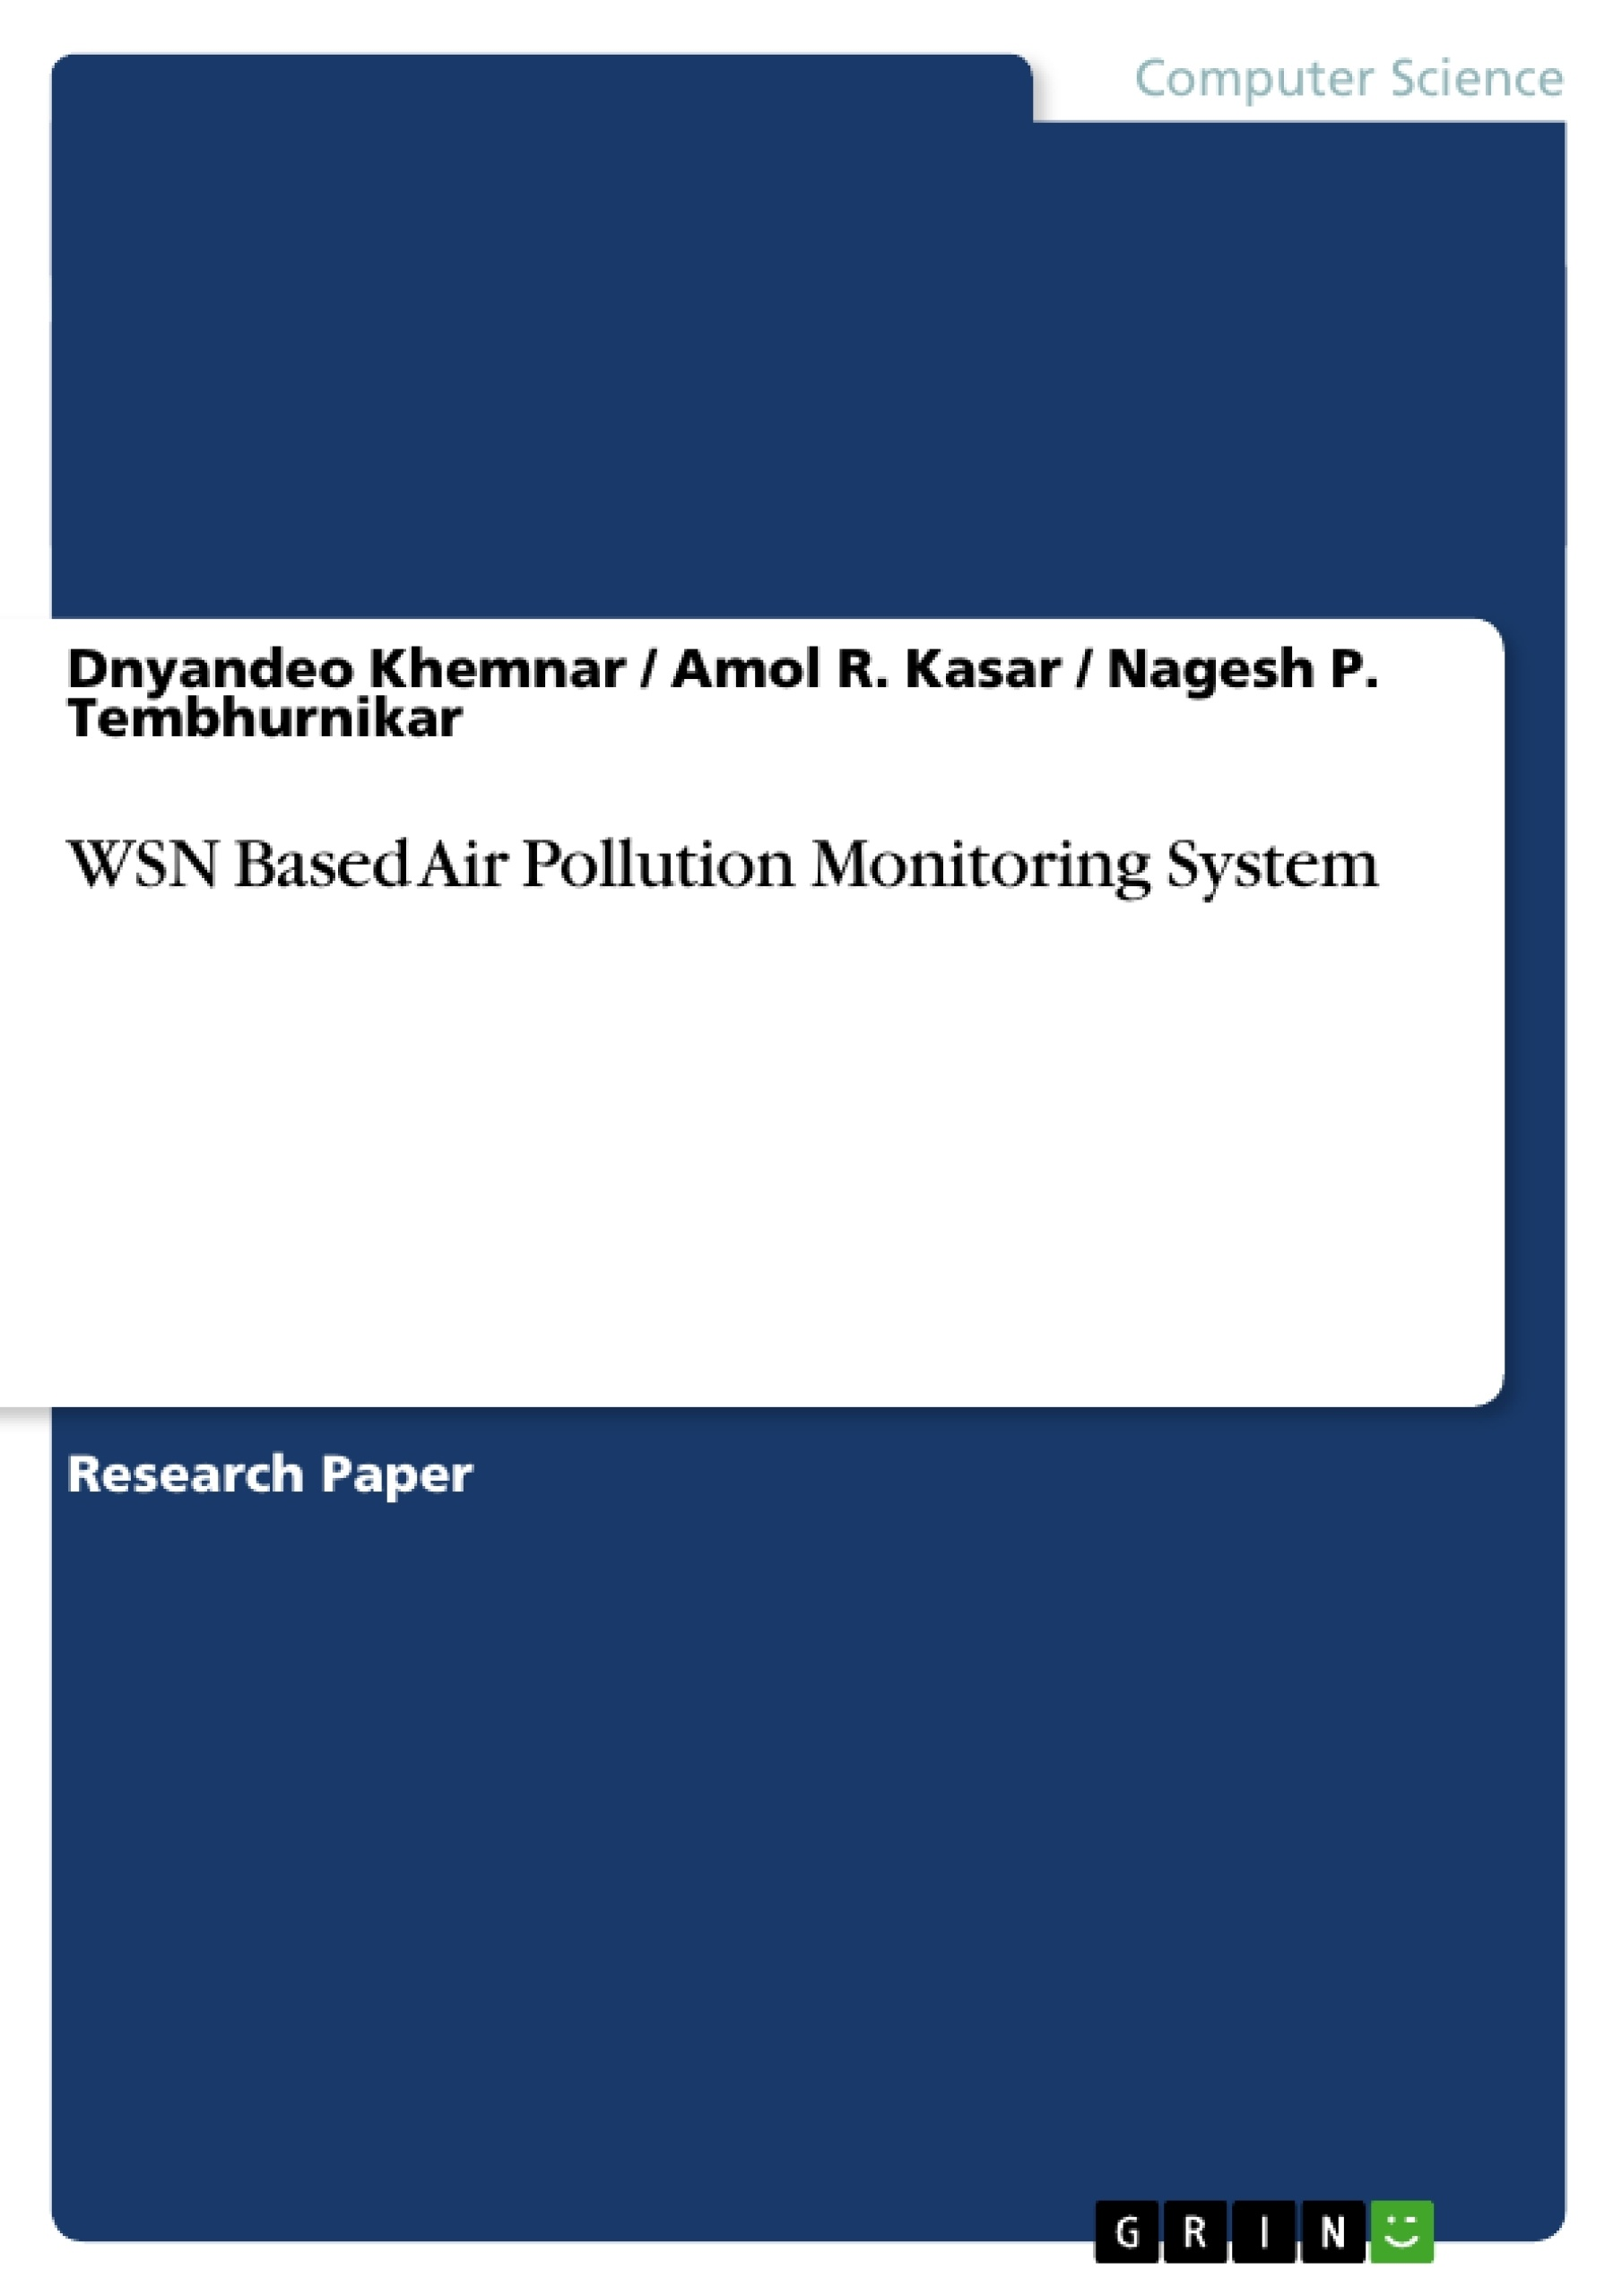 Title: WSN Based Air Pollution Monitoring System